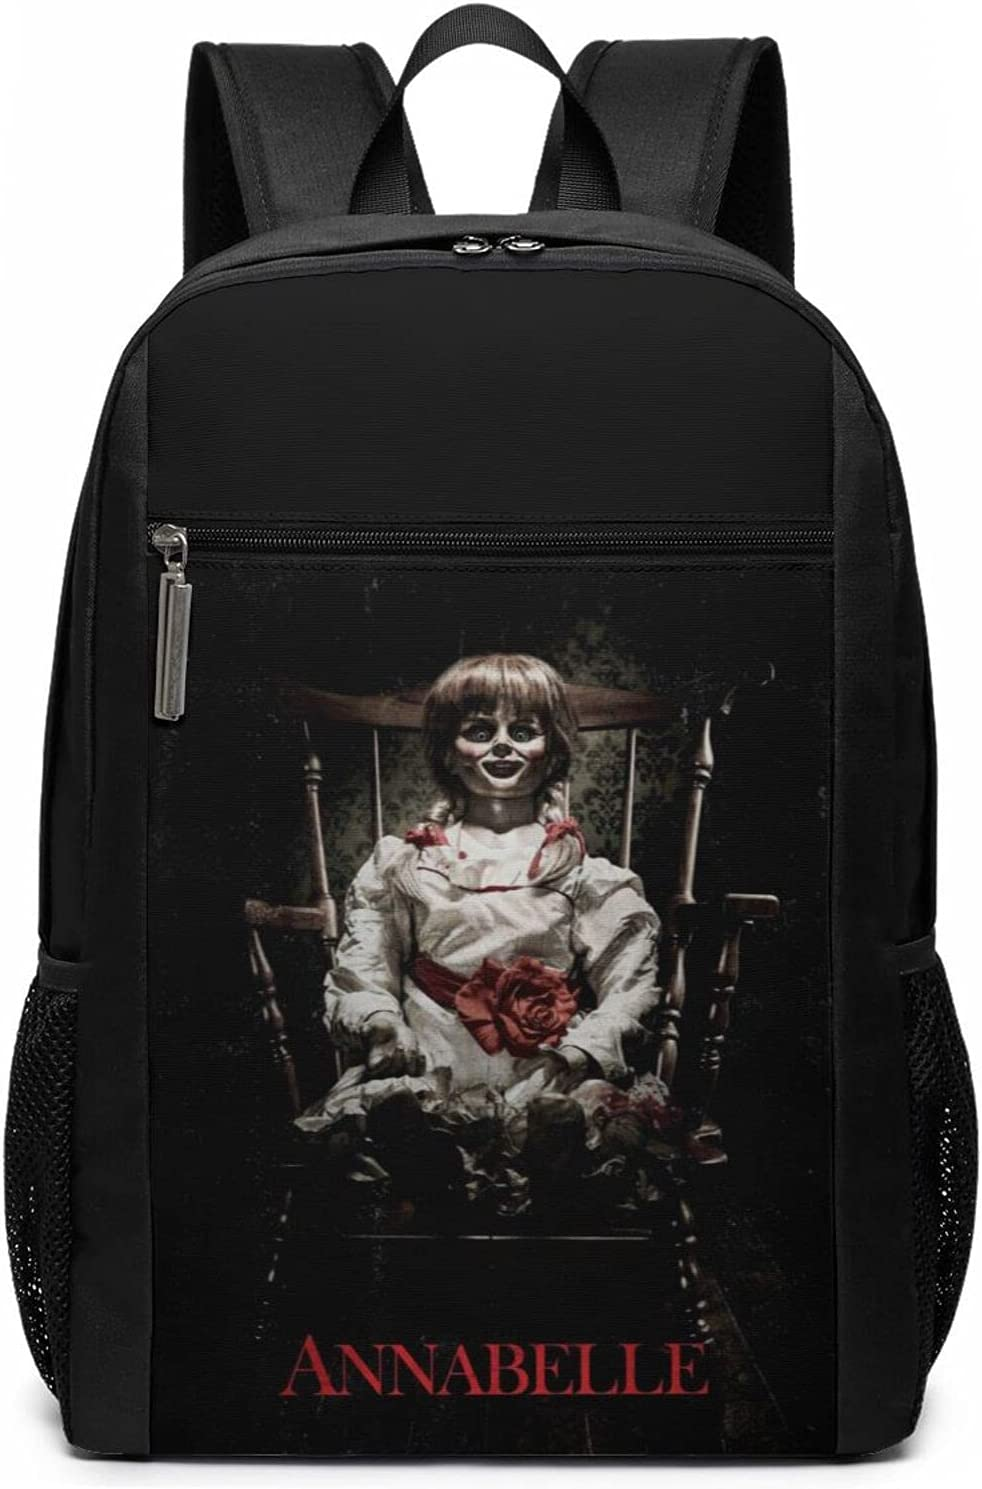 Annabelle Laptop Backpack High Travel Time sale Max 80% OFF Capacity Business